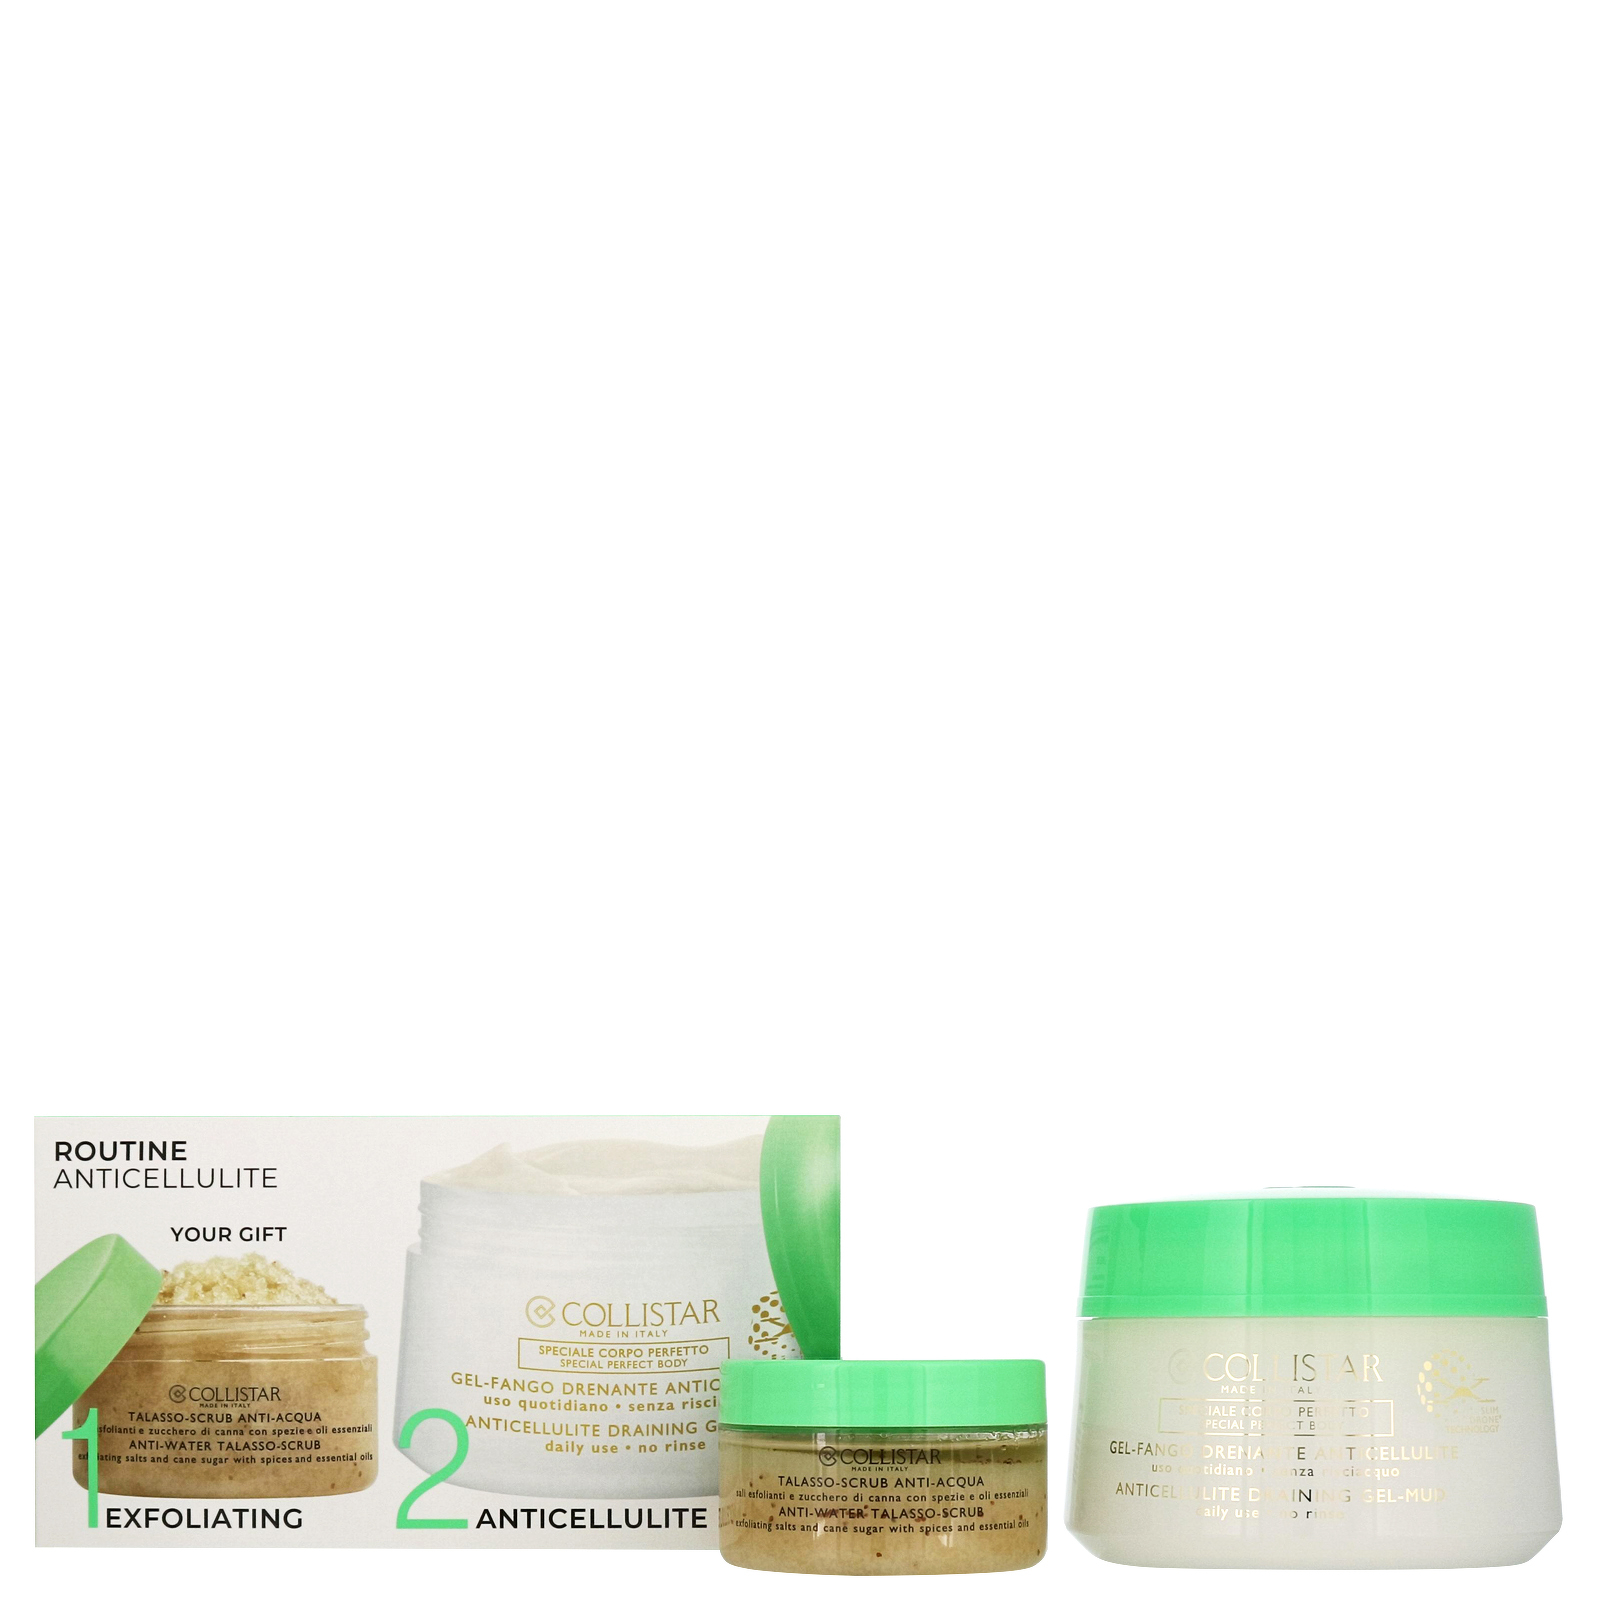 Collistar Gifts & Sets Anti-Cellulite Draining Gel-Mud Kit